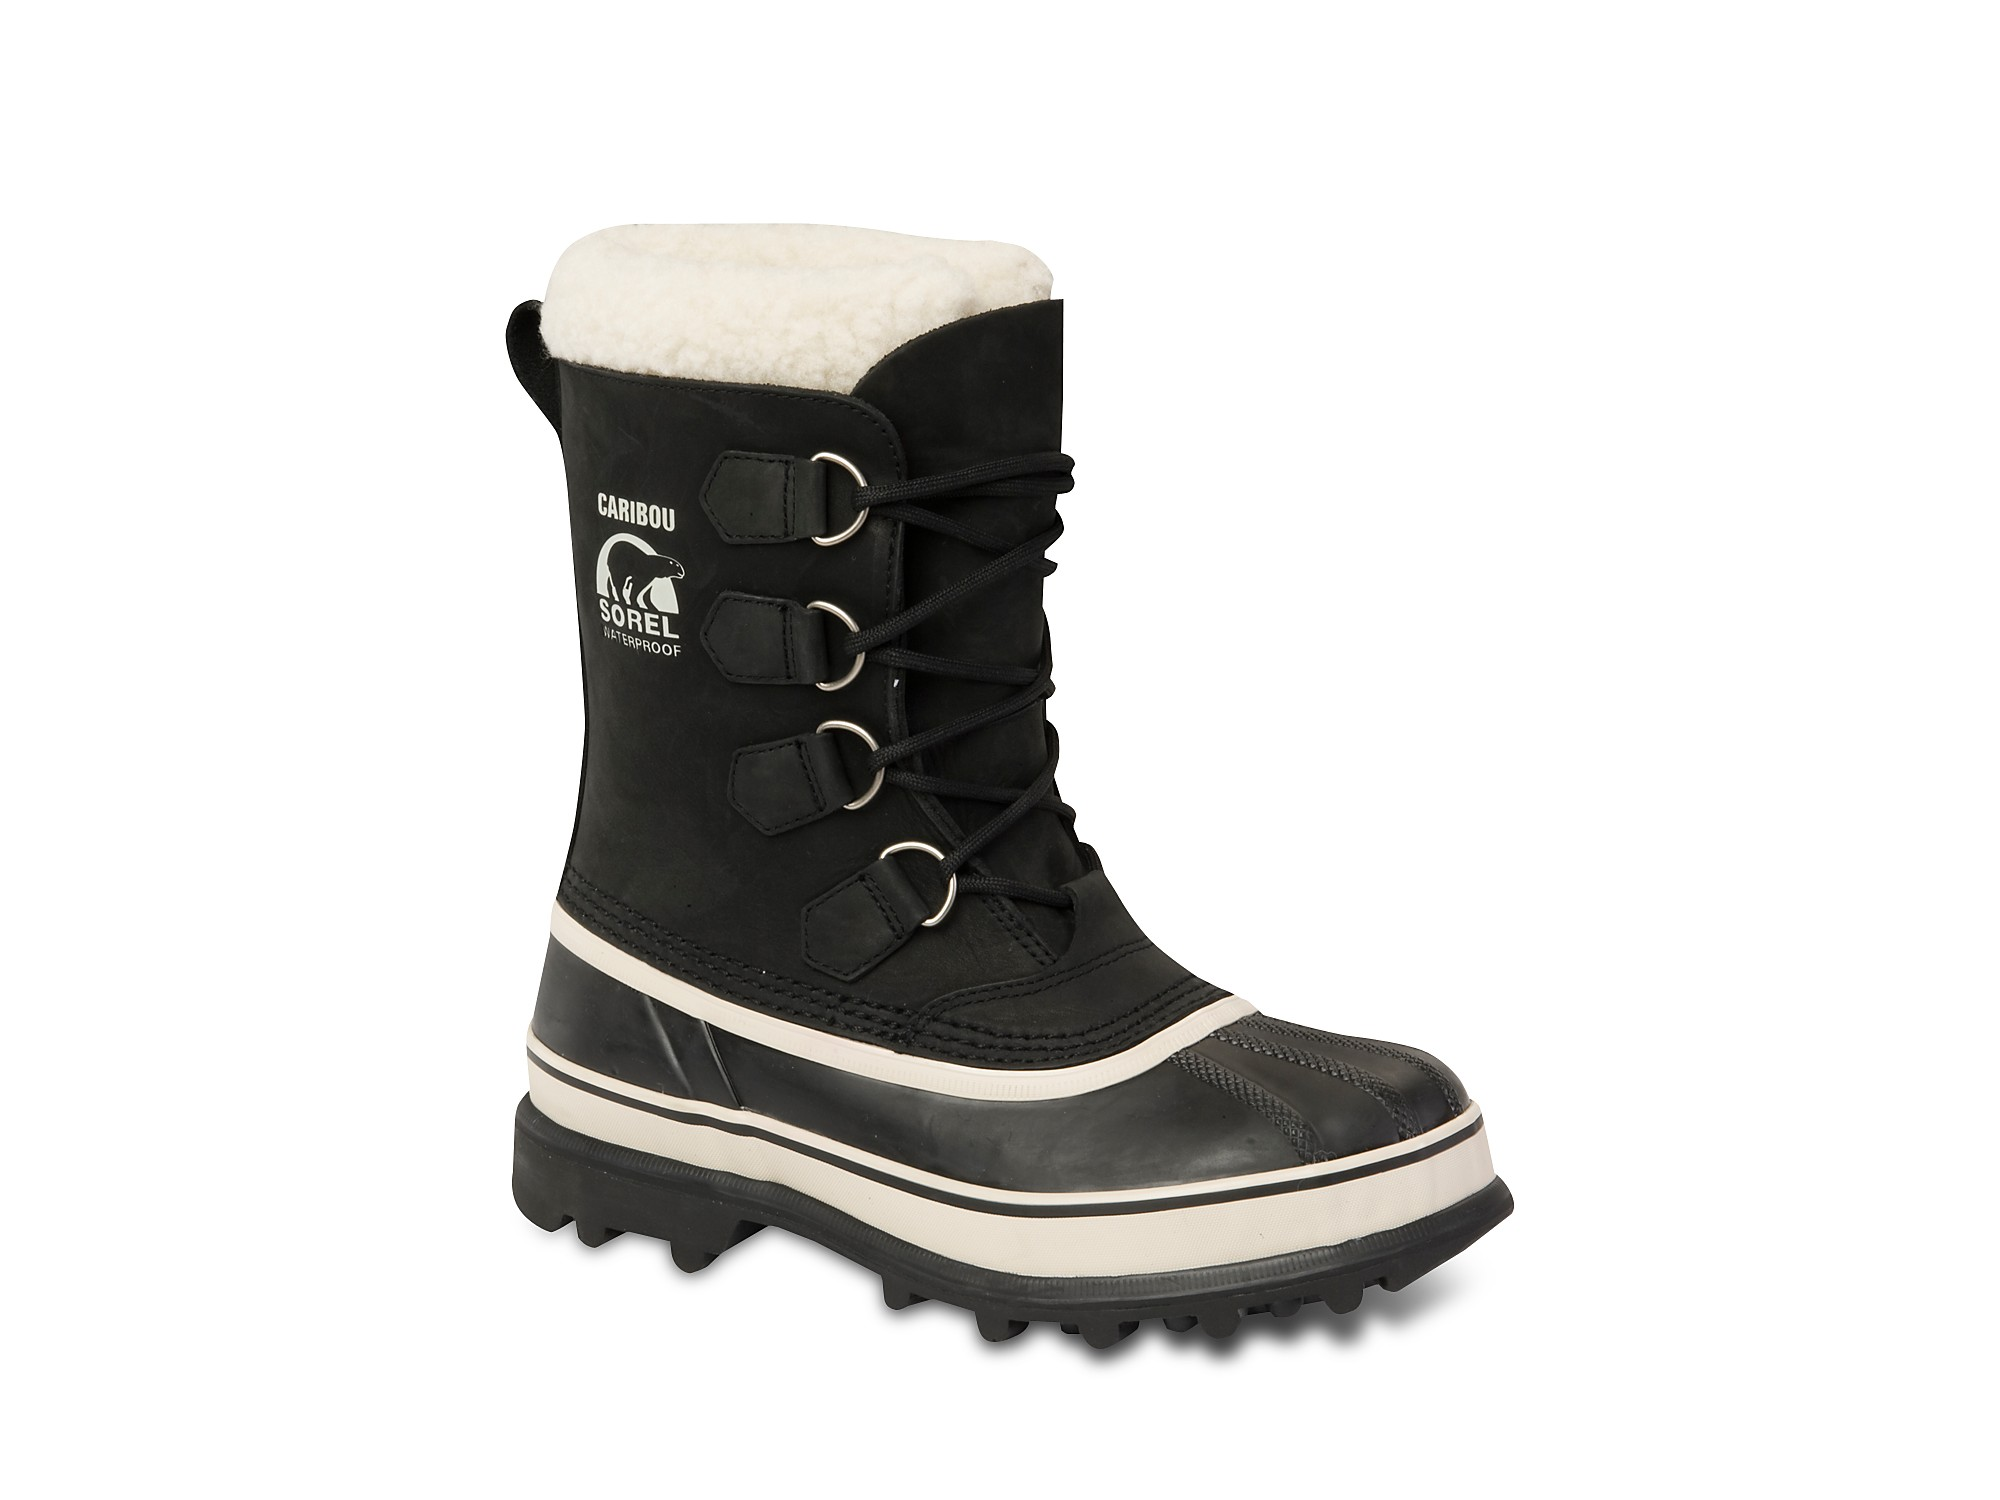 Sorel Womens Caribou Snow Boots In Black Black Stone Lyst